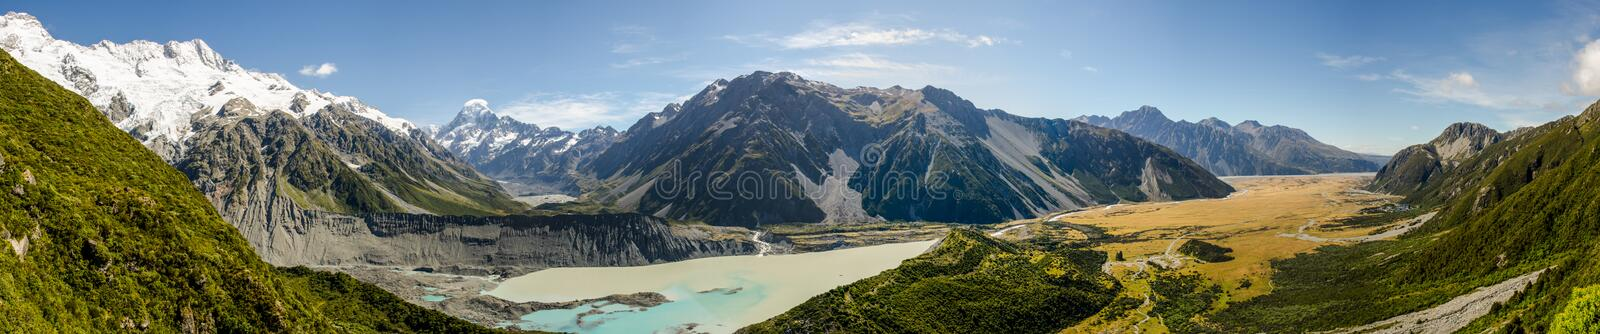 Valley and Mount Cook Panorama royalty free stock photography